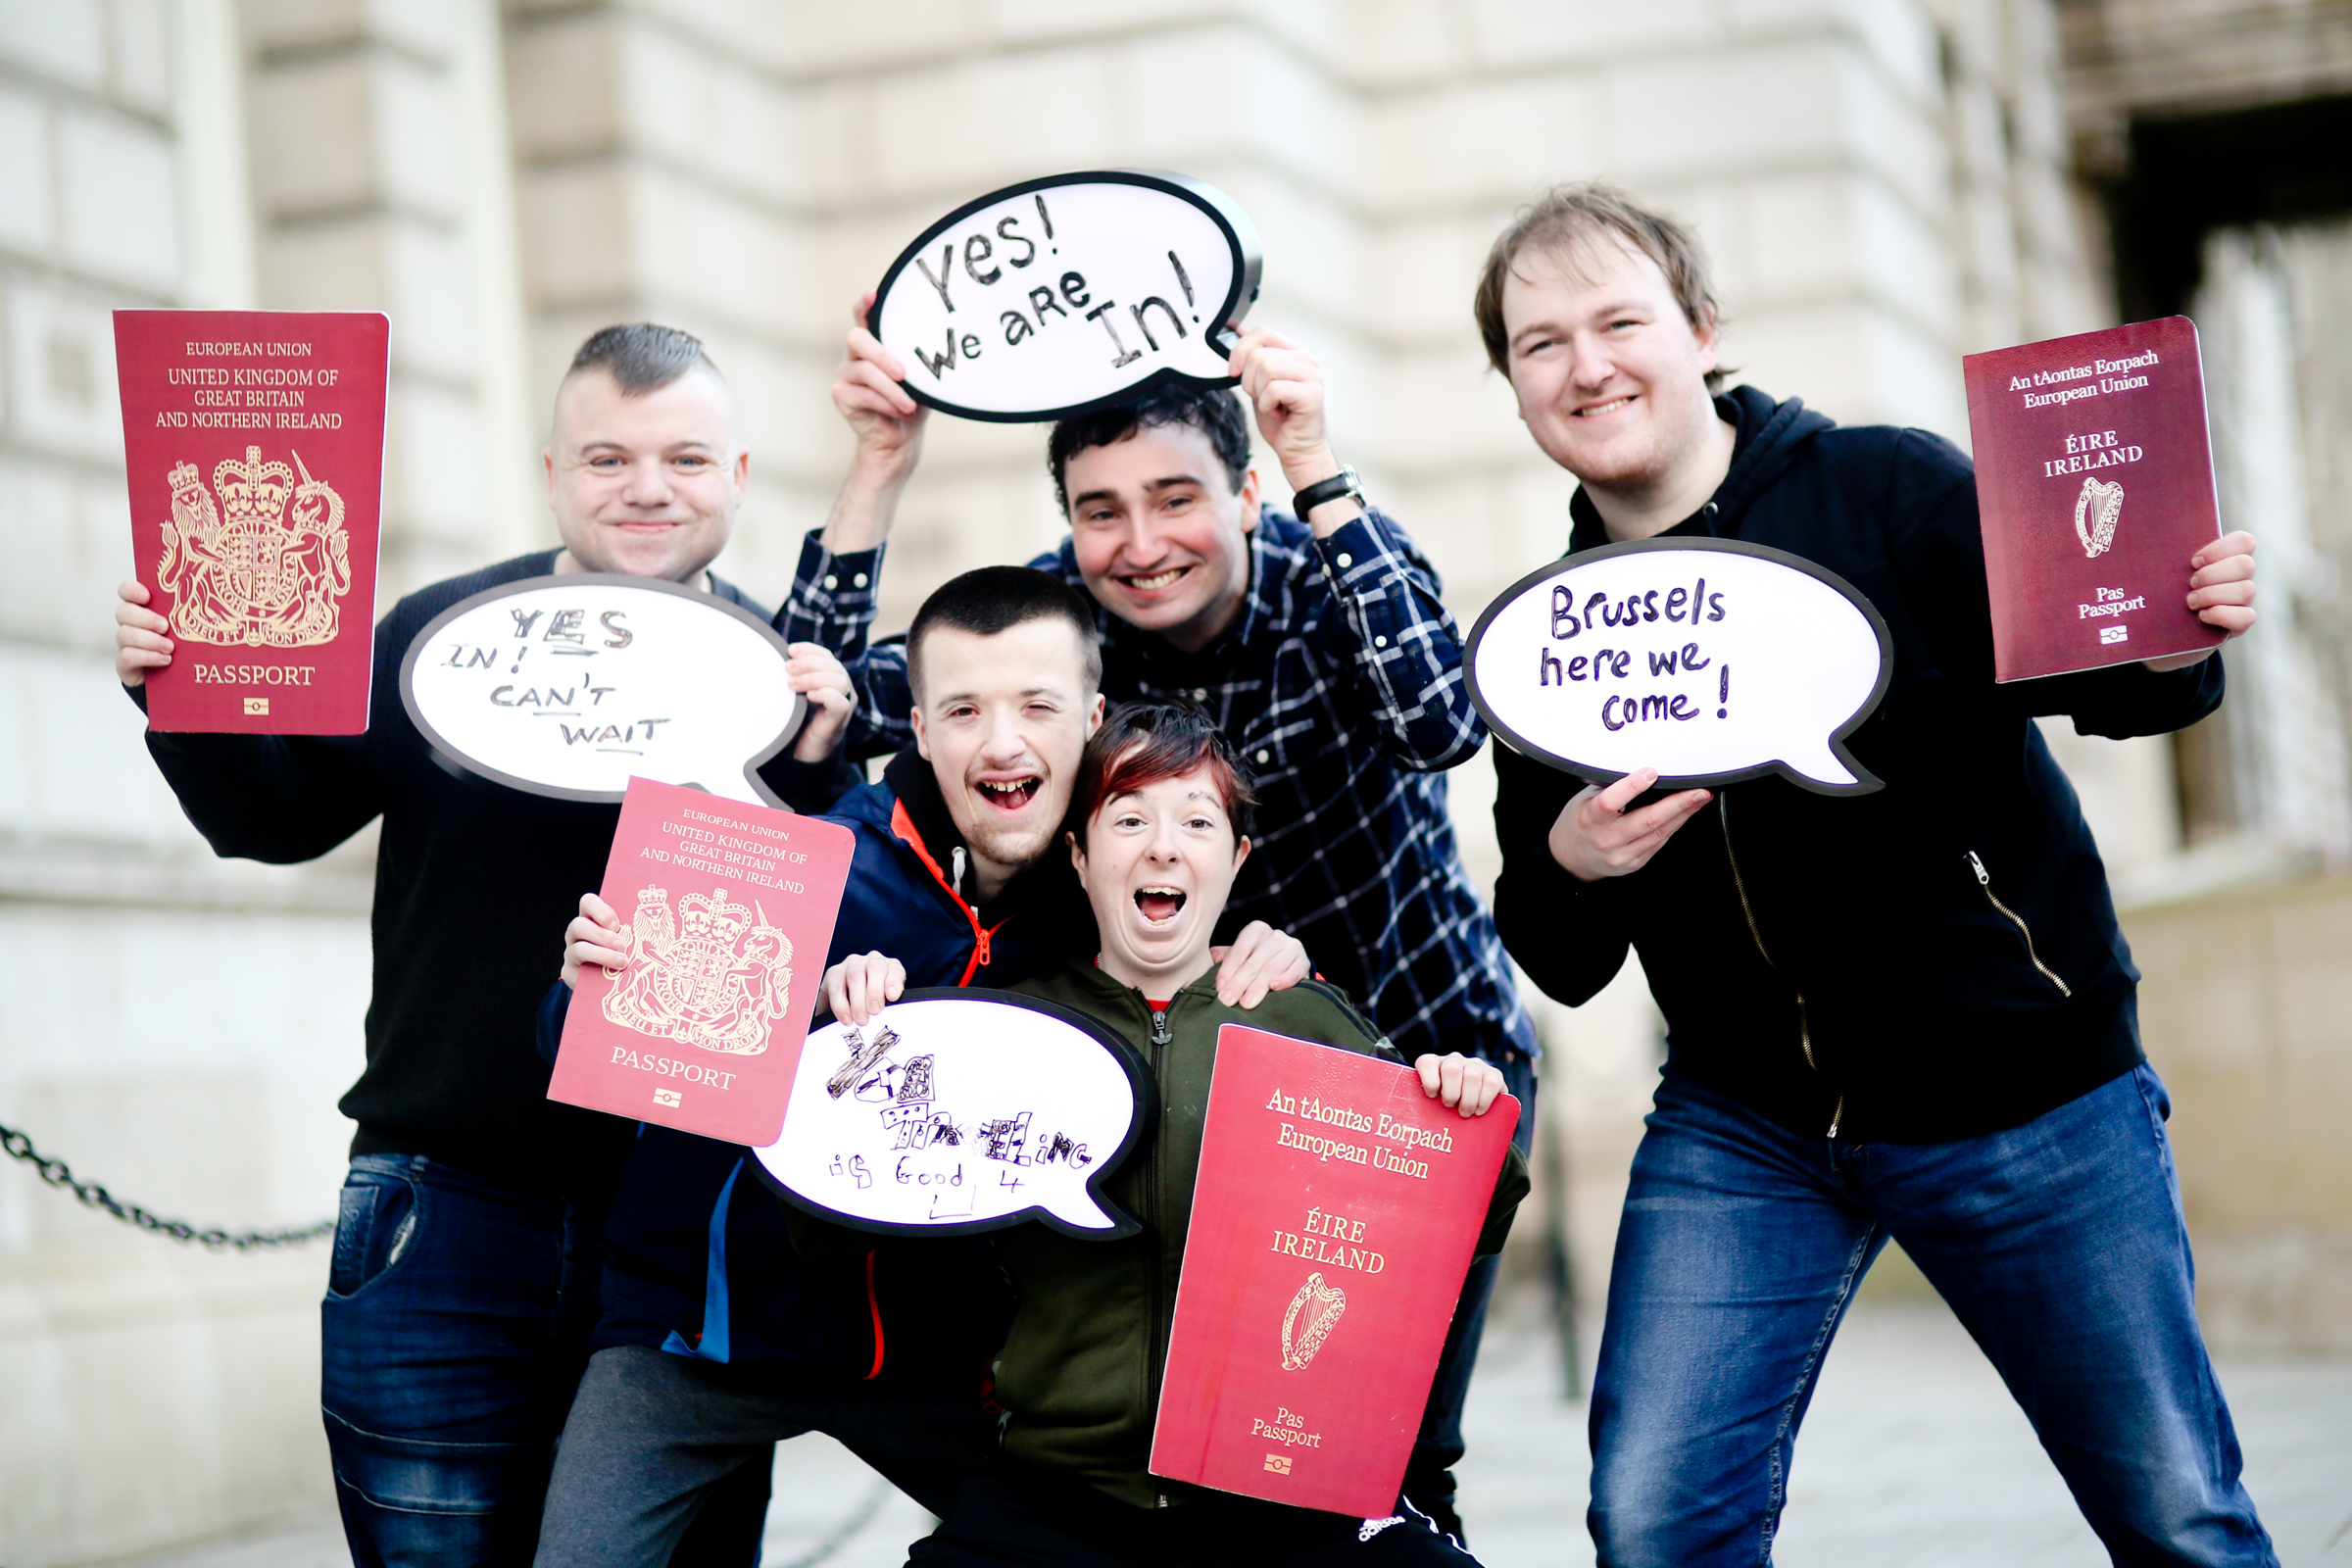 Young disabled ambassadors head to Brussels to promote Northern Ireland